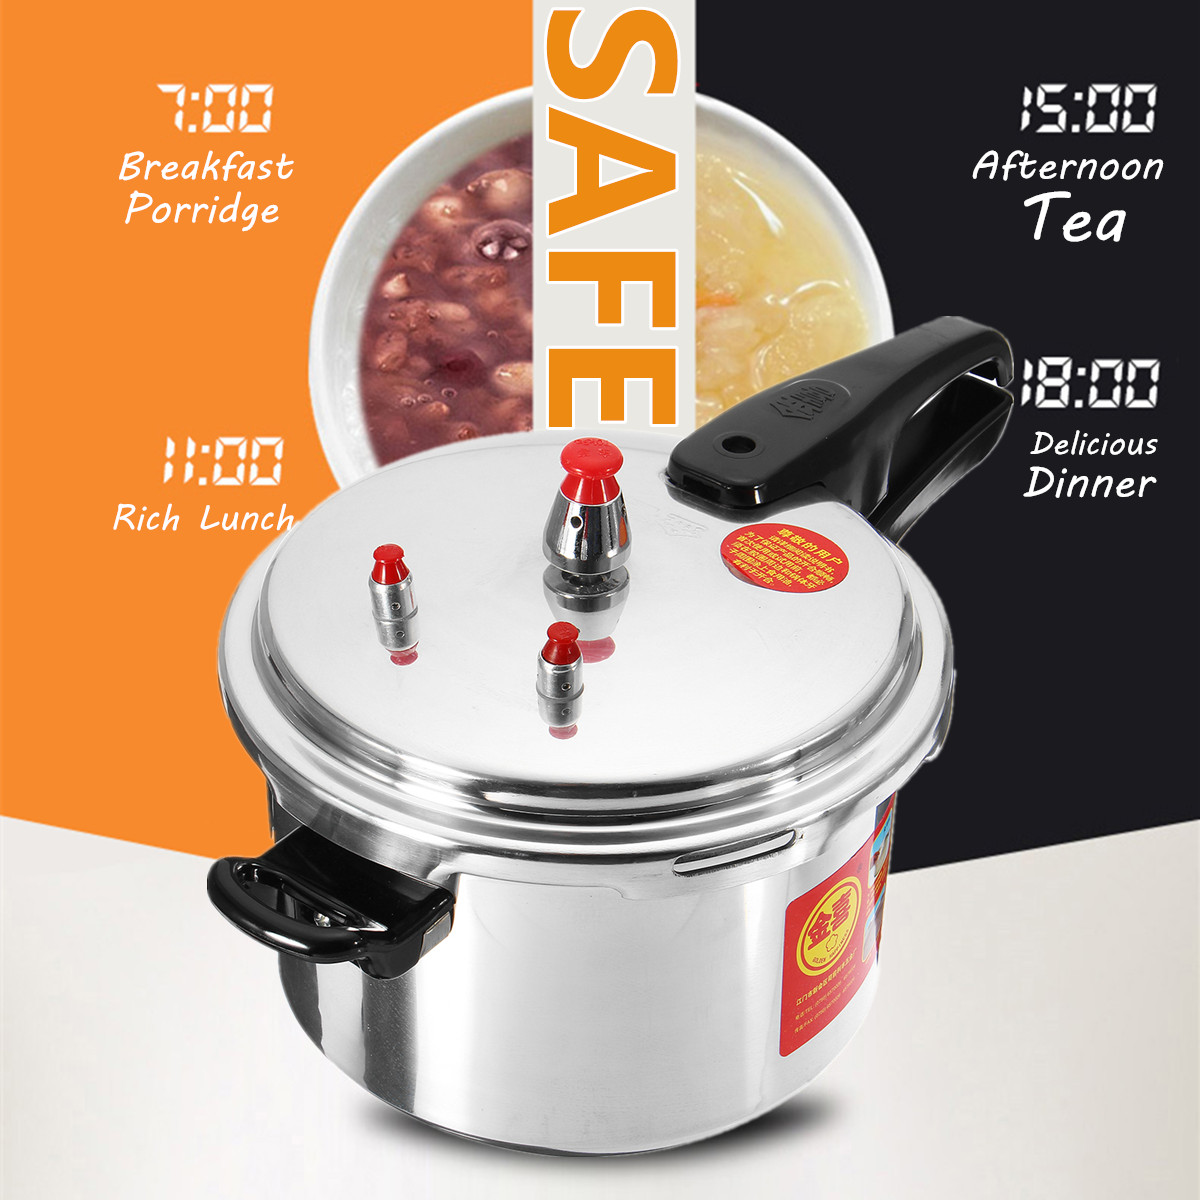 Aluminium Alloy Kitchen Pressure Cooker 20/24CM Gas Stove Cooking Energy-saving Safety Protection Light-weight Easy to CleanAluminium Alloy Kitchen Pressure Cooker 20/24CM Gas Stove Cooking Energy-saving Safety Protection Light-weight Easy to Clean